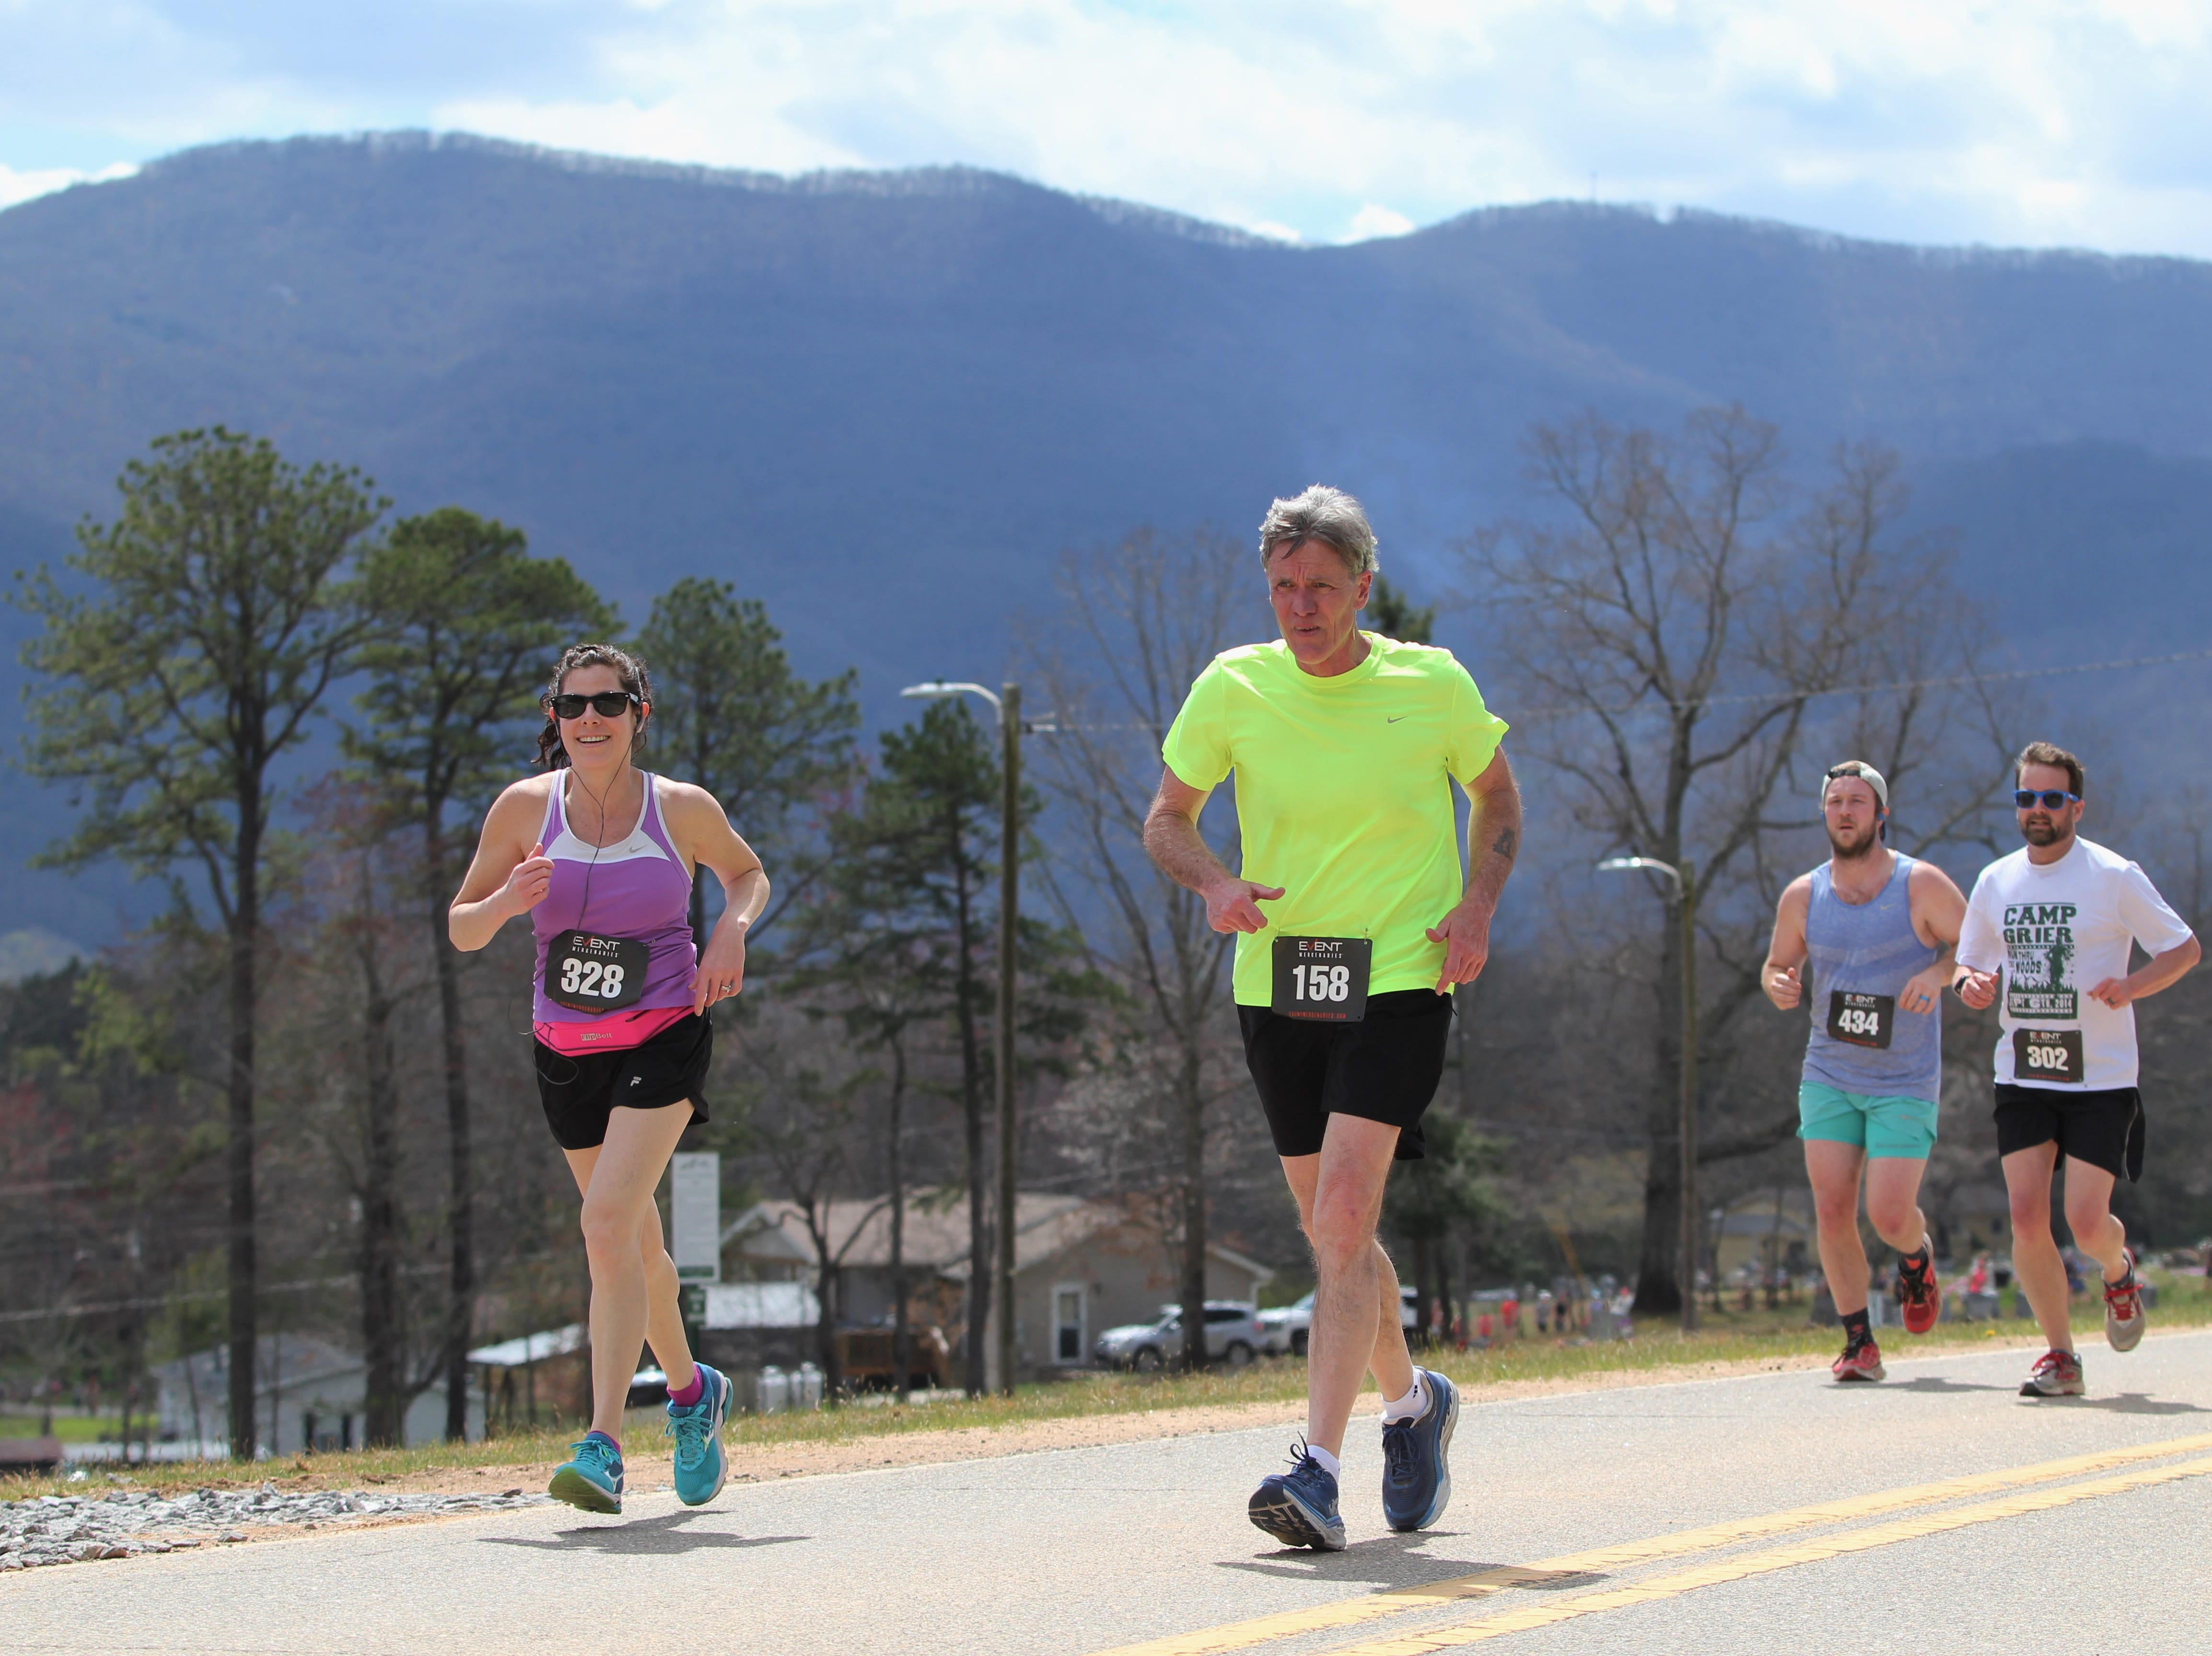 A record number of runners met at Pisgah Brewing Co. to run the 2019 Black Mountain Greenway Challenge 5K/10K. The event has been held for the past 12 years and benefits the greenway system in Black Mountain. This year over 325 runners competed in the races.